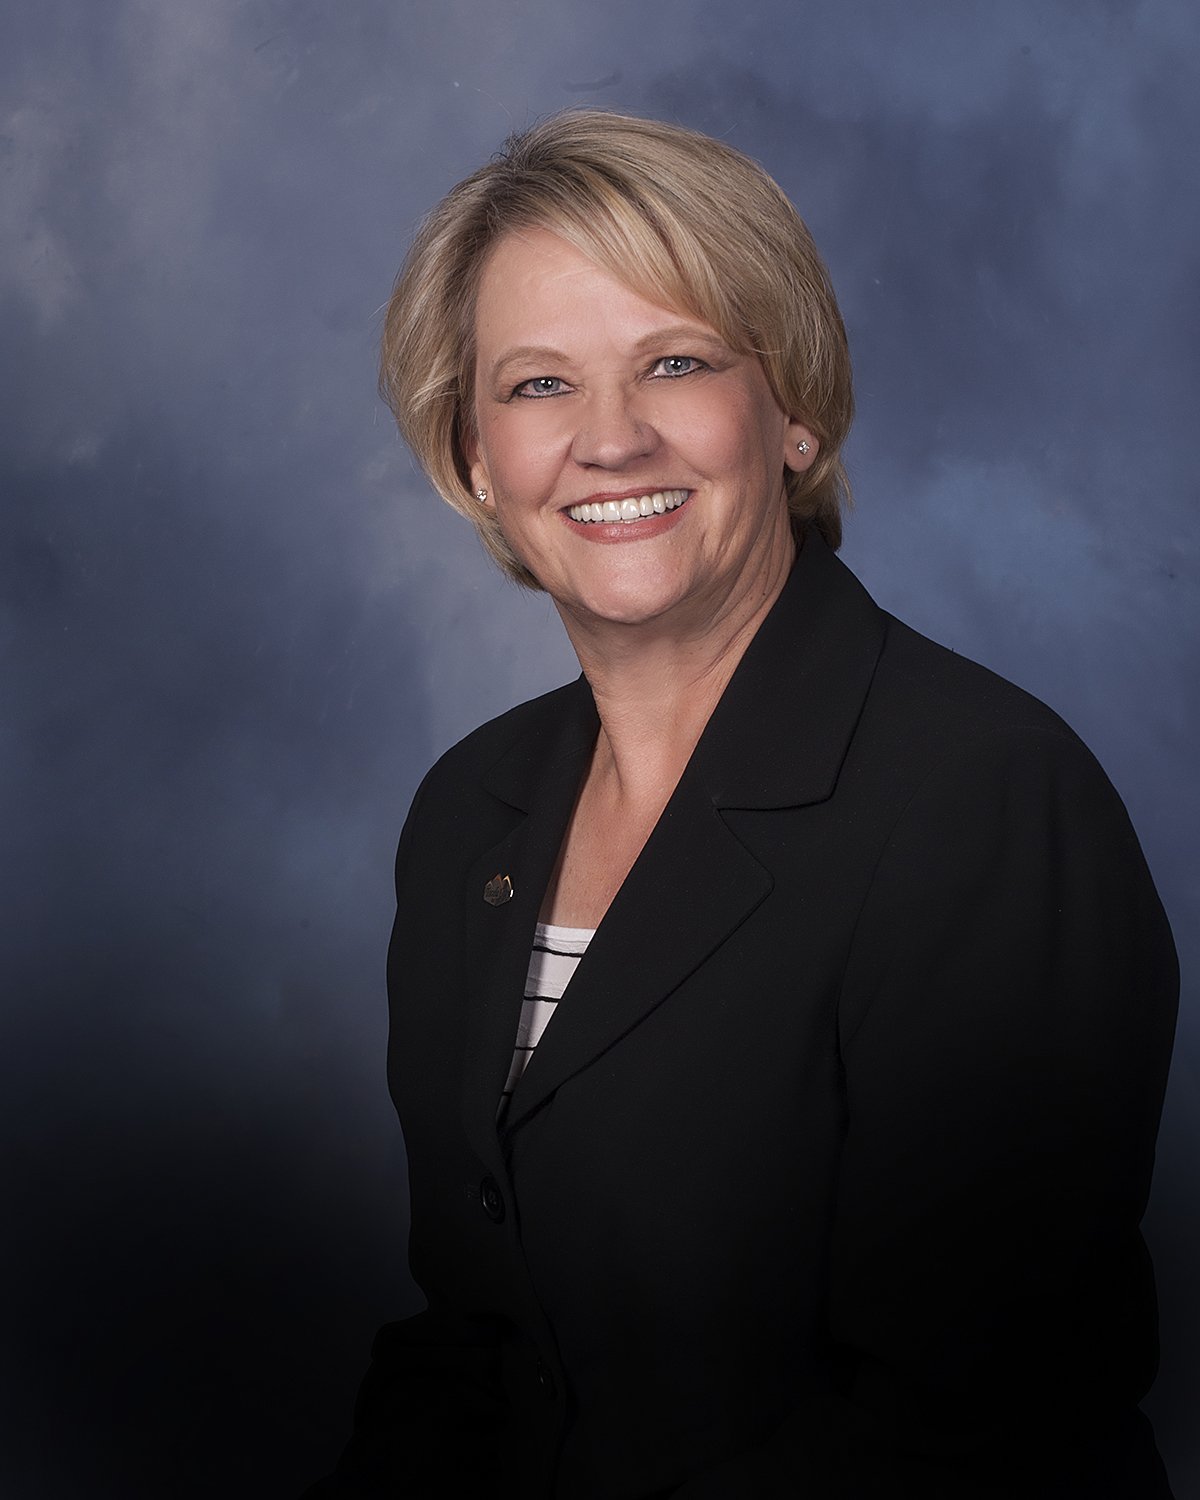 Mayor Debbie Winn